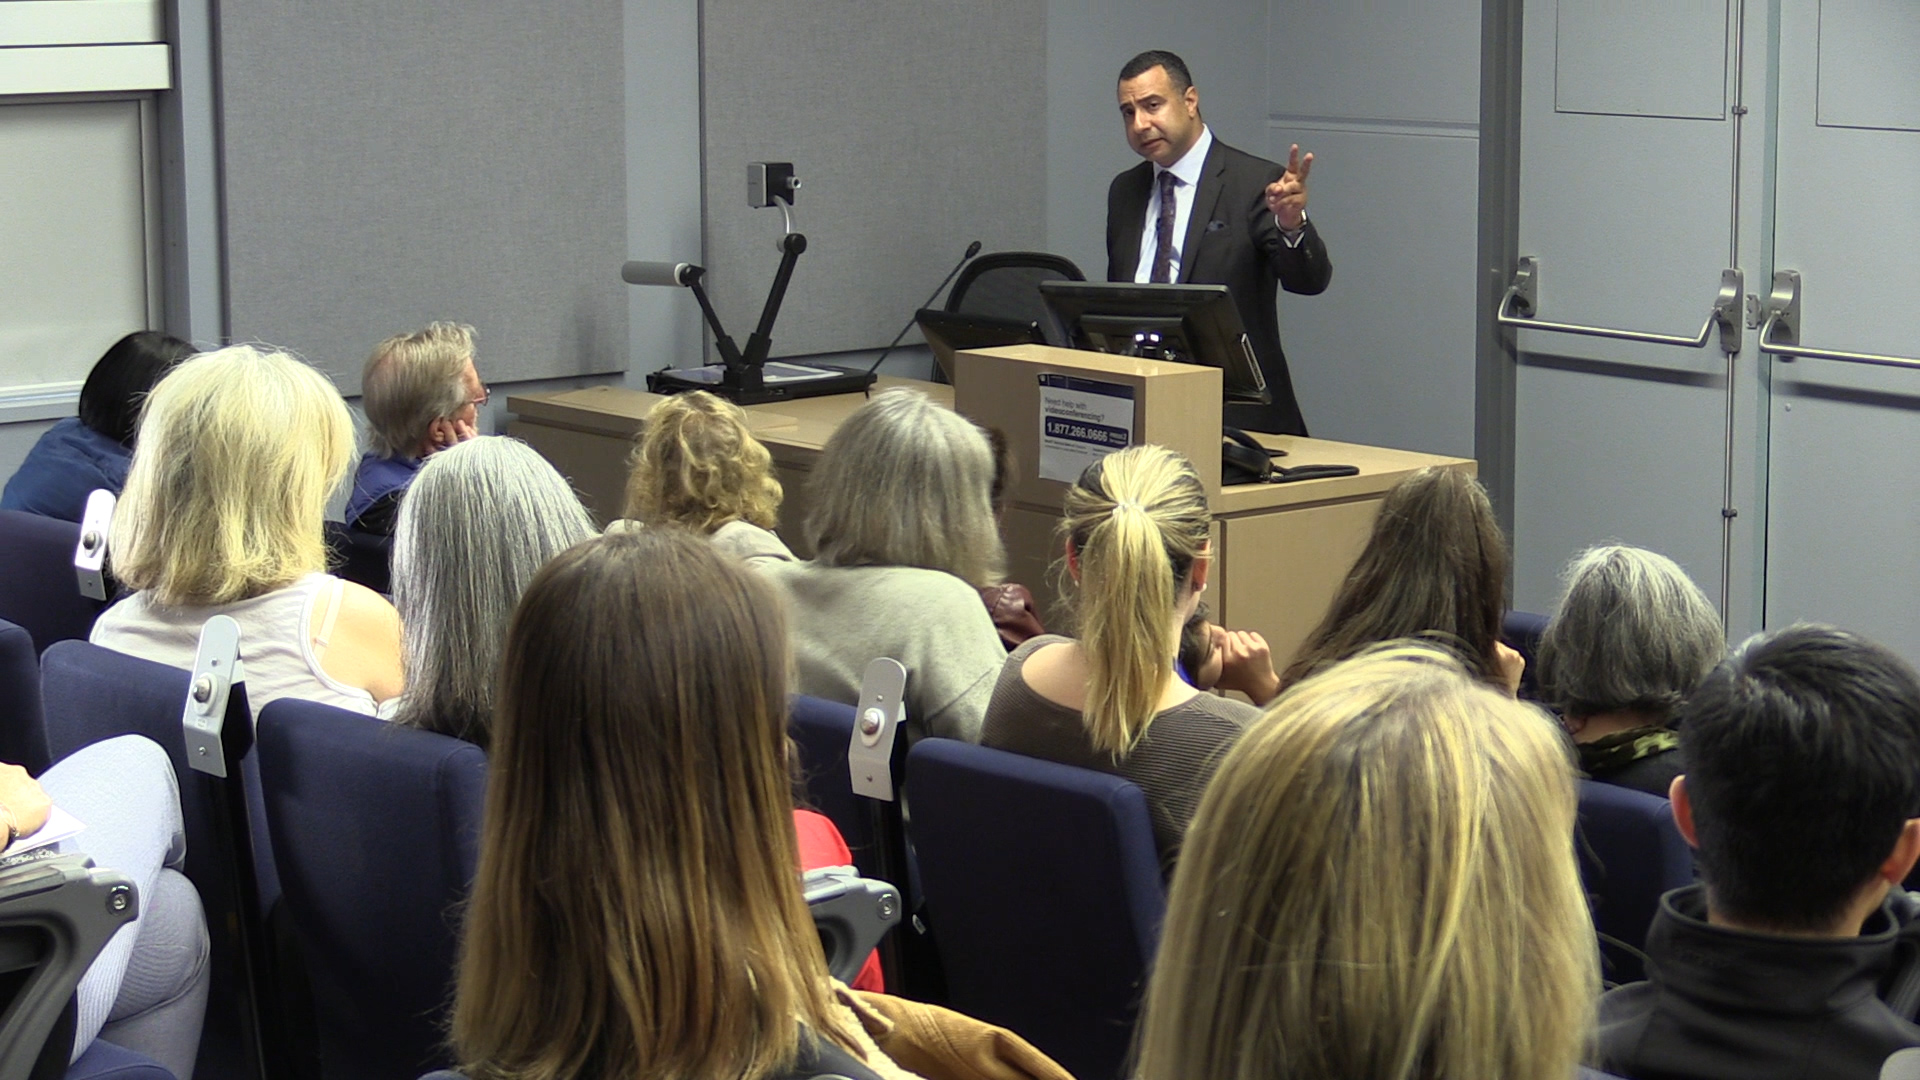 Majed El Shafie discusses trauma care for Yazidi women and girls who are survivors of ISIS torture at the Women's Hospital, Vancouver, Sept 28, 2018